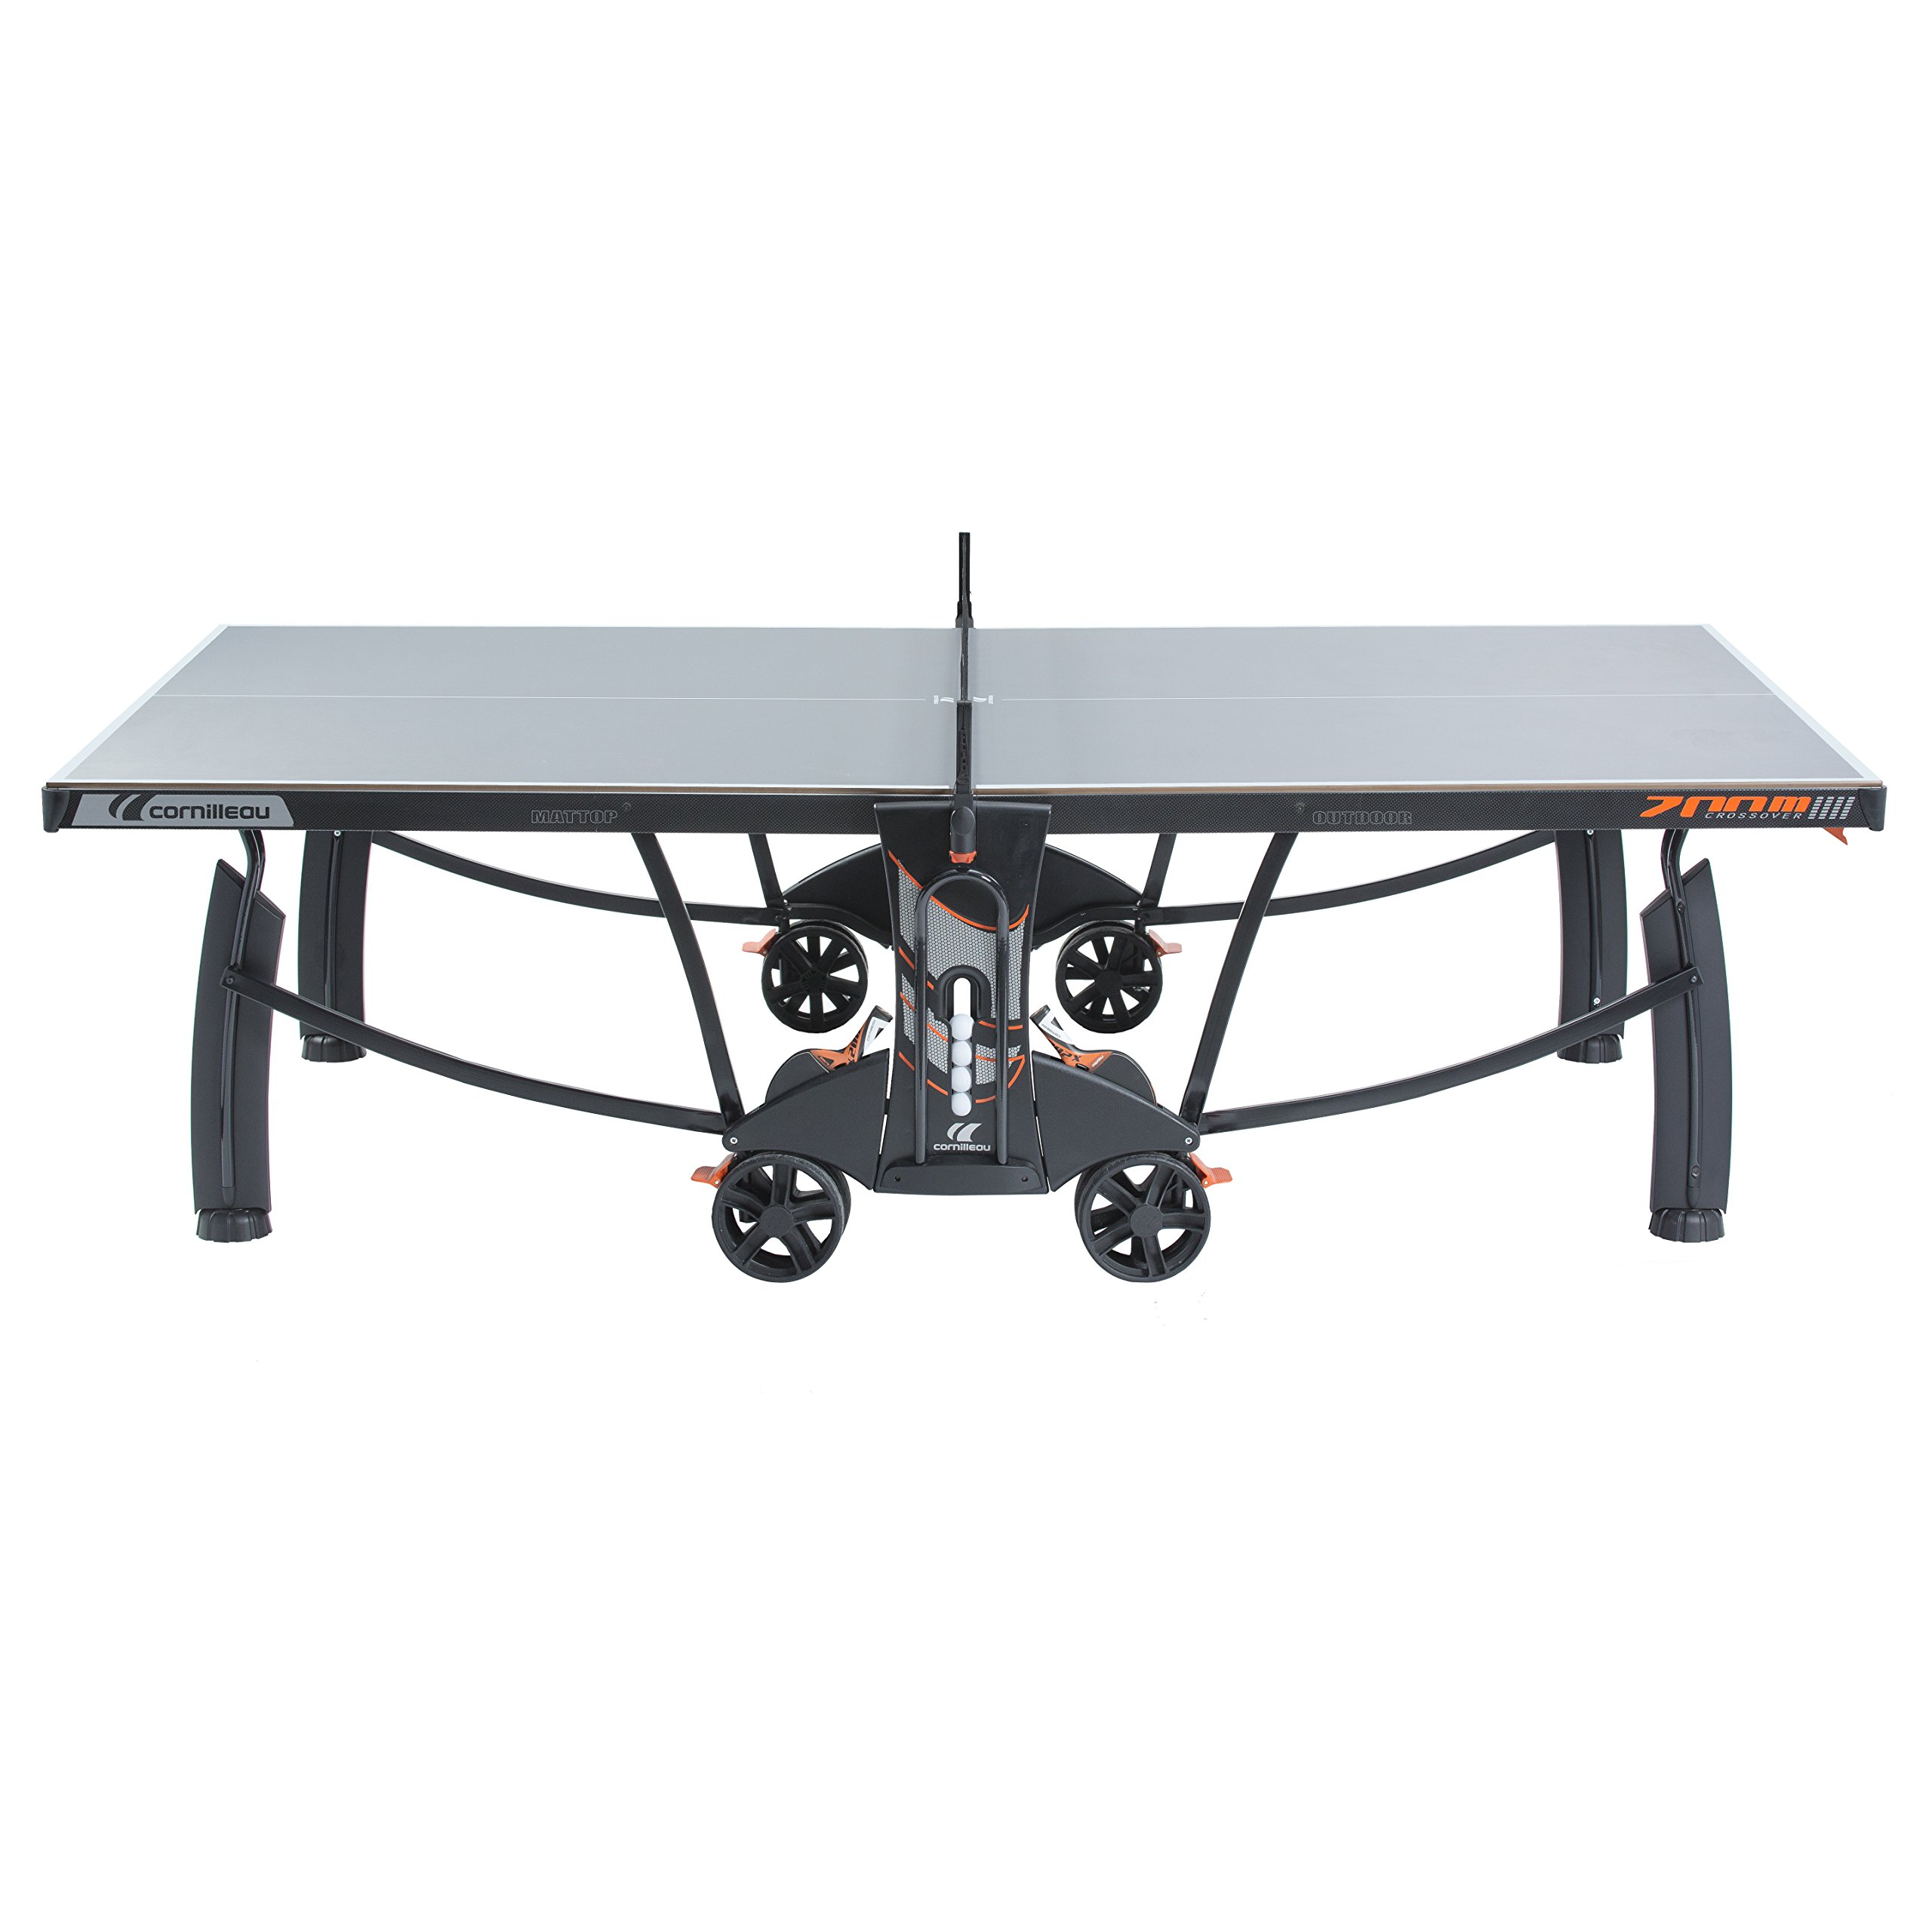 Cornilleau 700M Crossover Indoor/Outdoor Table Tennis Table by Cornilleau